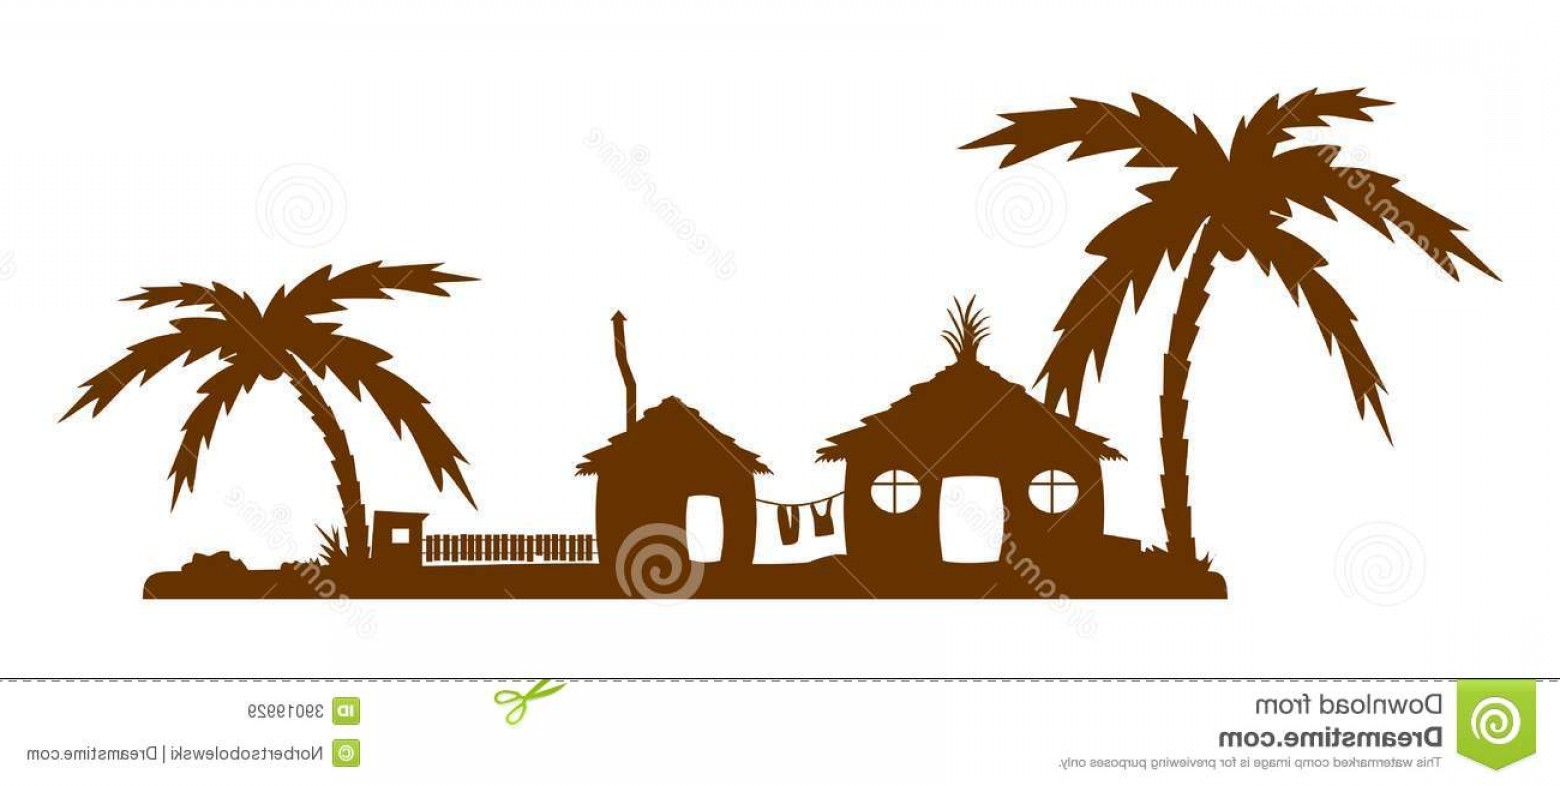 1560x786 Royalty Free Stock Images Tropical Village Silhouette Buildings